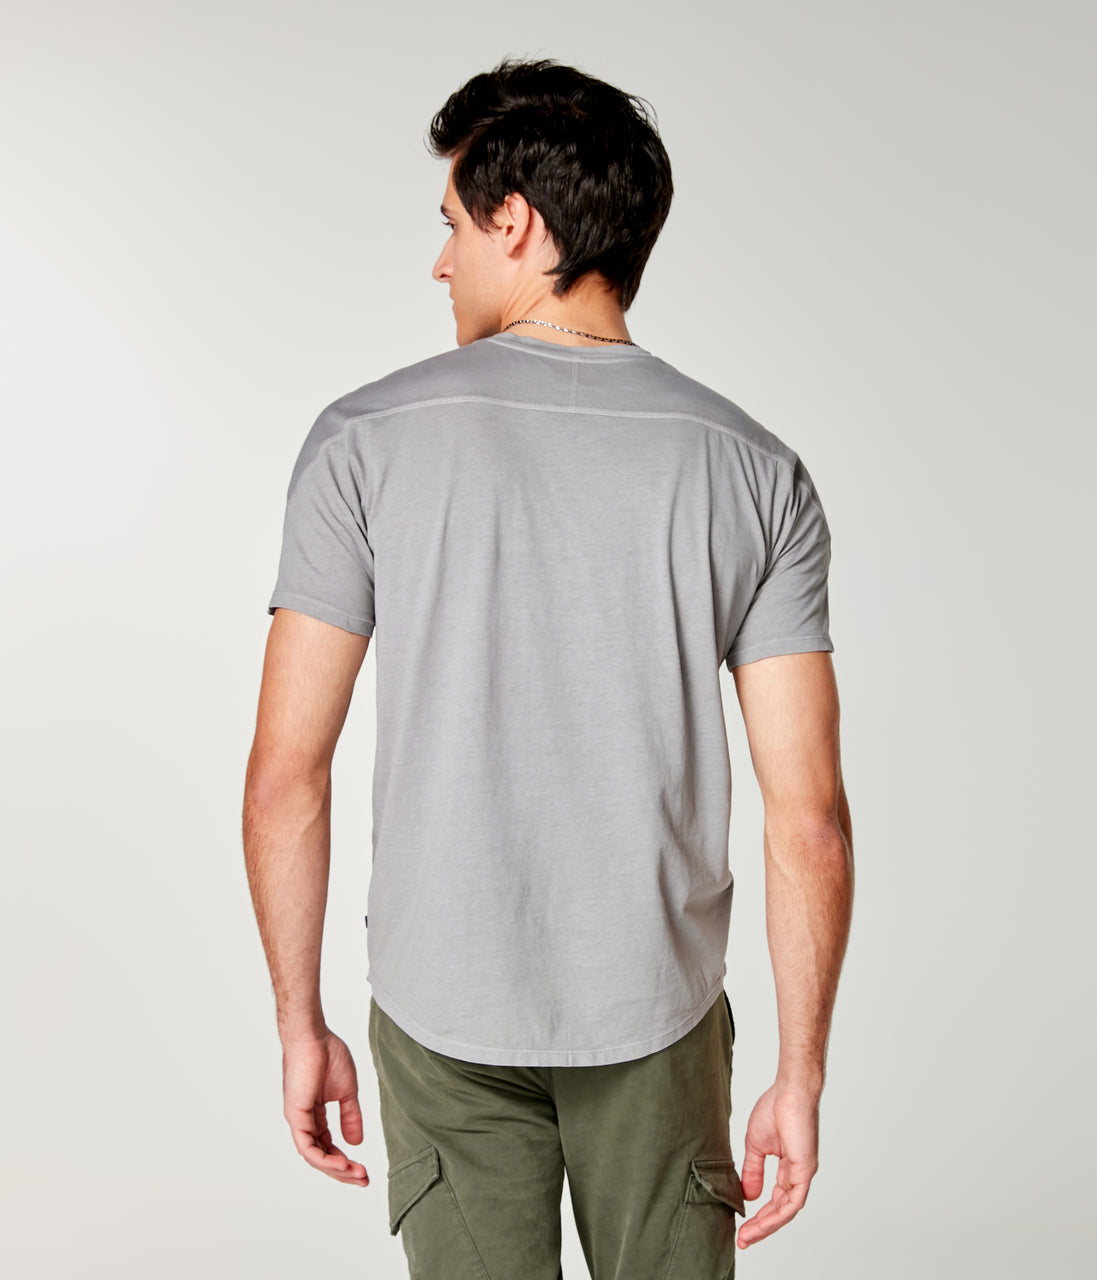 Premium Cotton Jersey Hi Vee Tee - Frost Grey - Good Man Brand - Premium Cotton Jersey Hi Vee Tee - Frost Grey